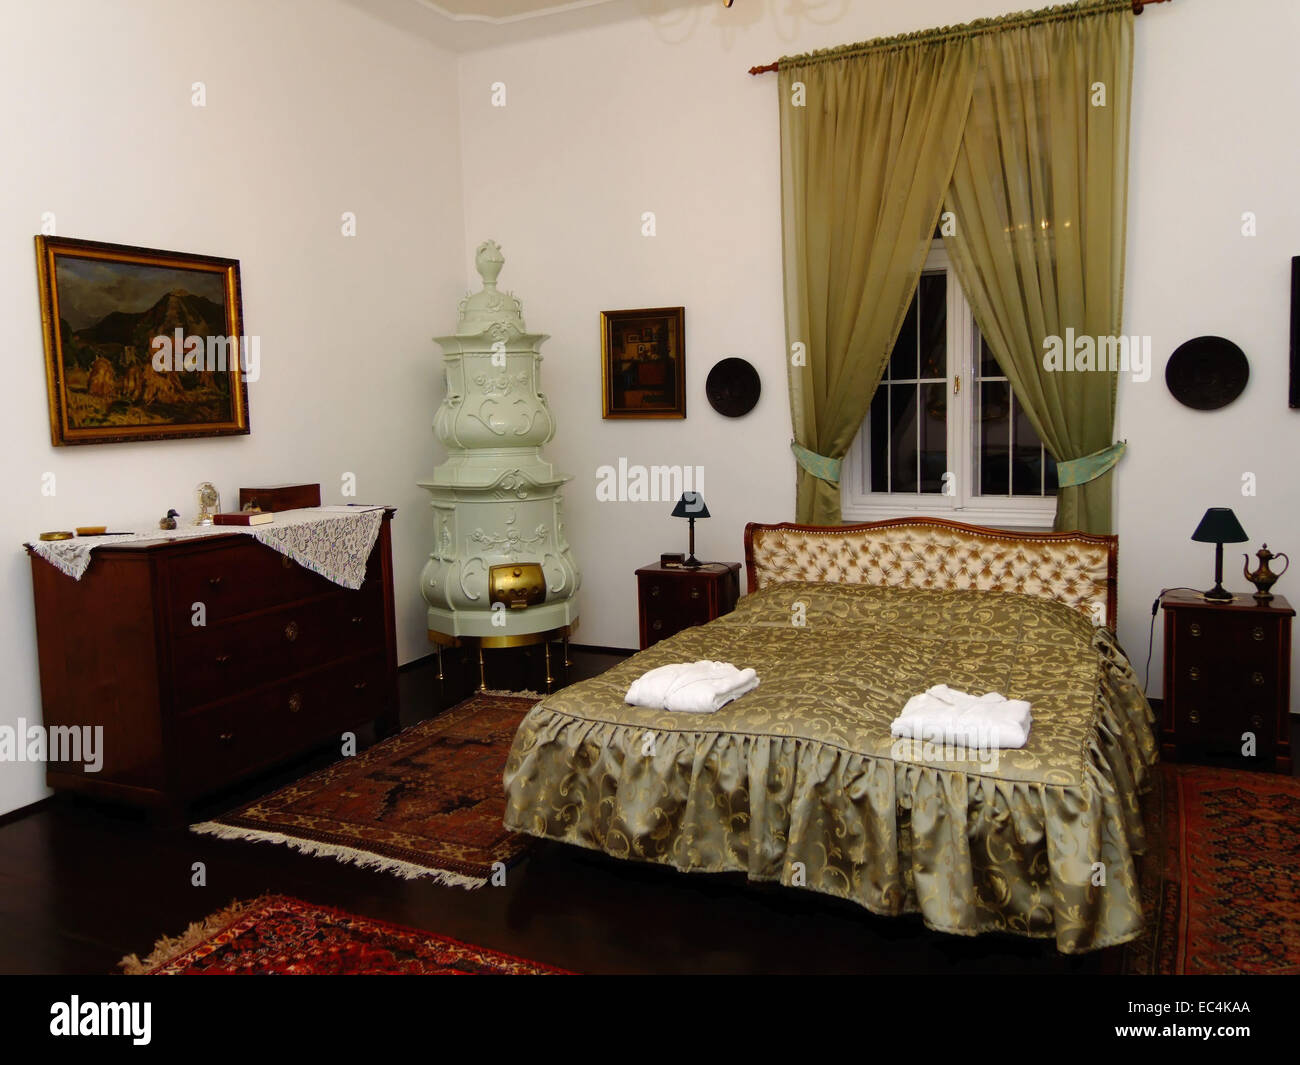 Bedrooms with tiled stove in the Schlosshotel of Pronay Hungary - Stock Image